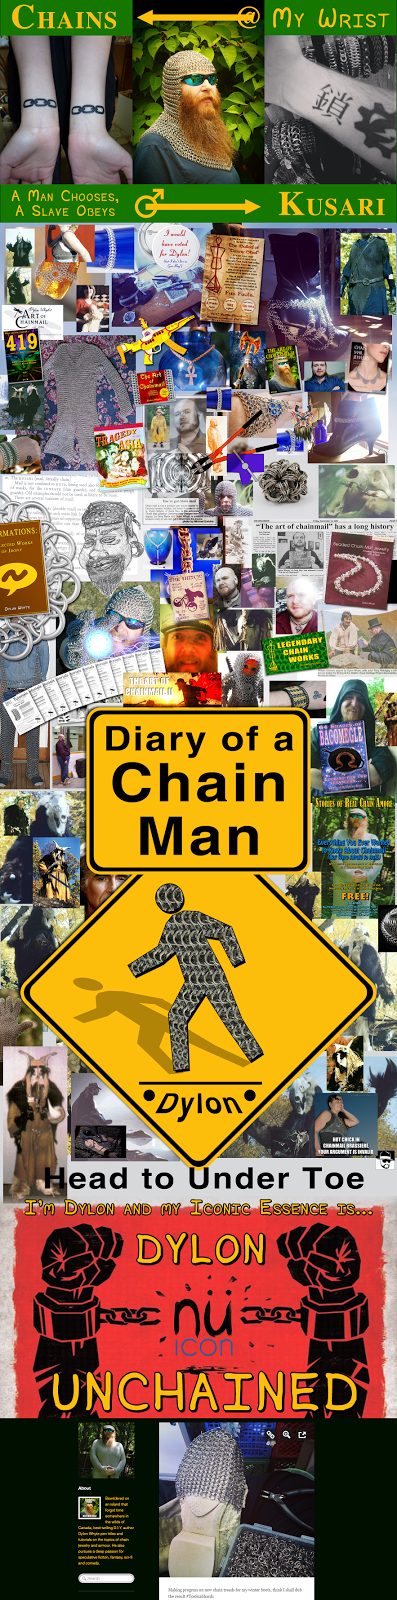 http://www.chainman.me